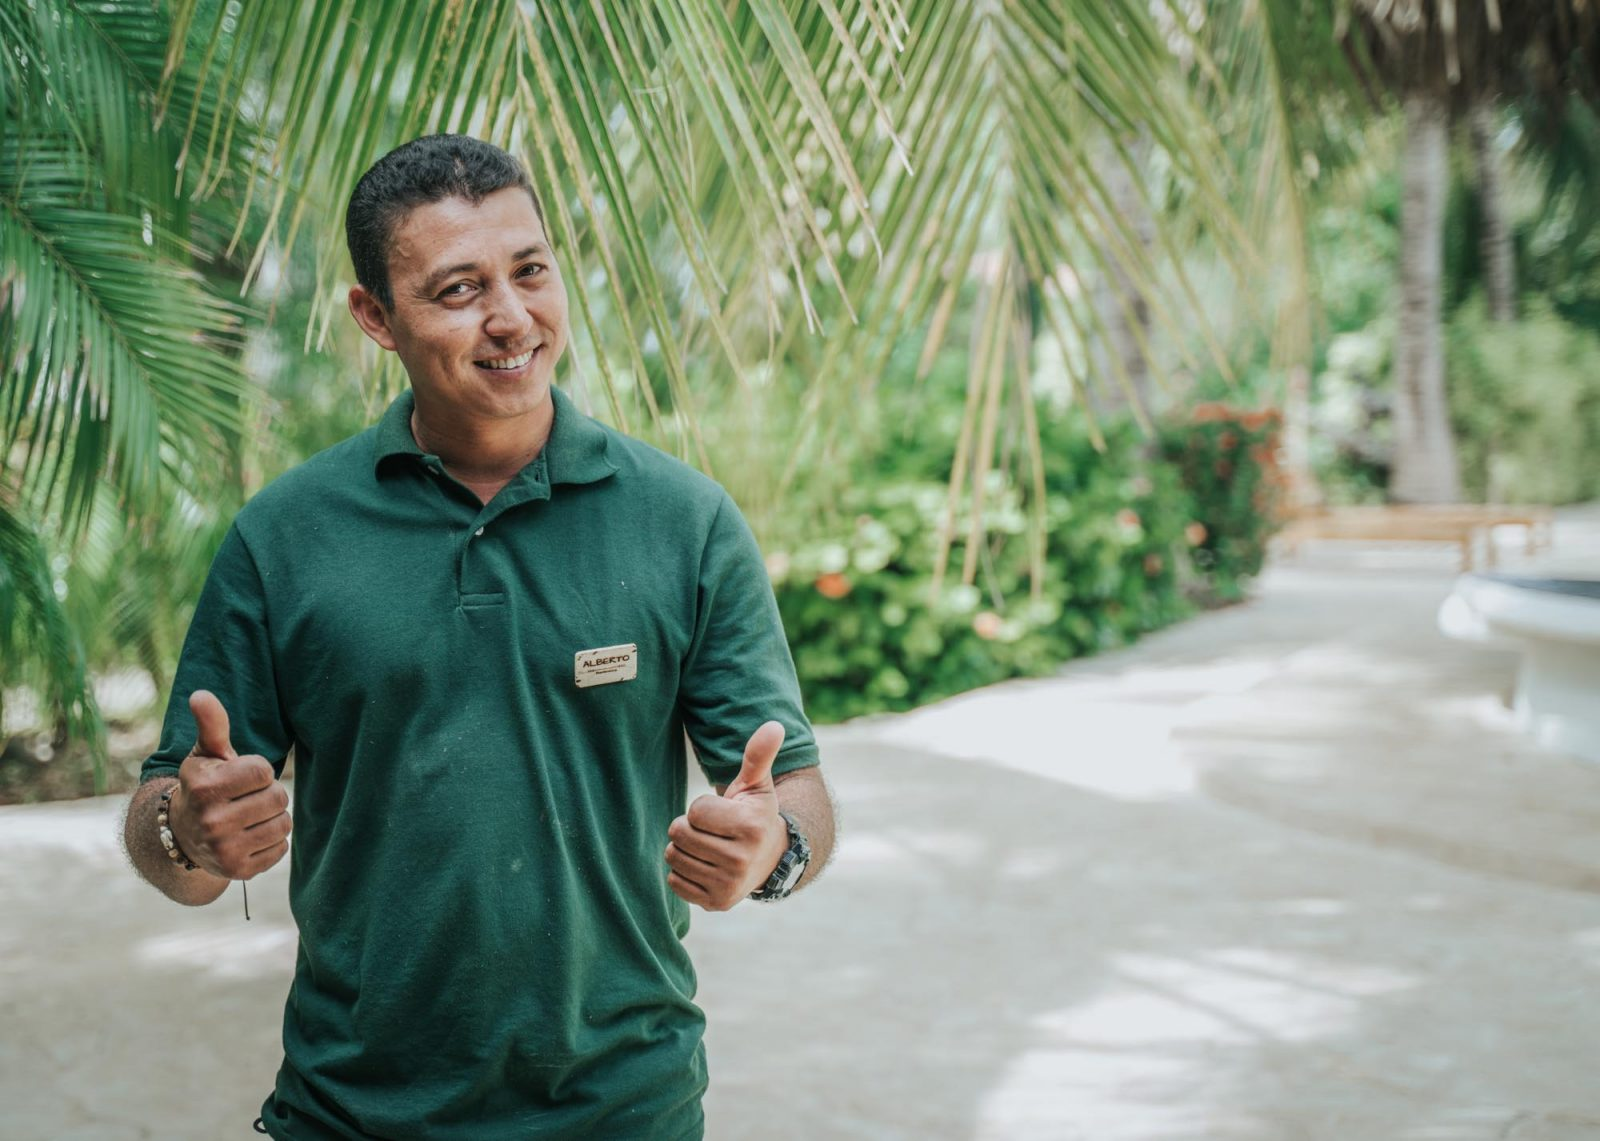 Alberto is the head of maintenance at Drift Away Eco-Lodge.